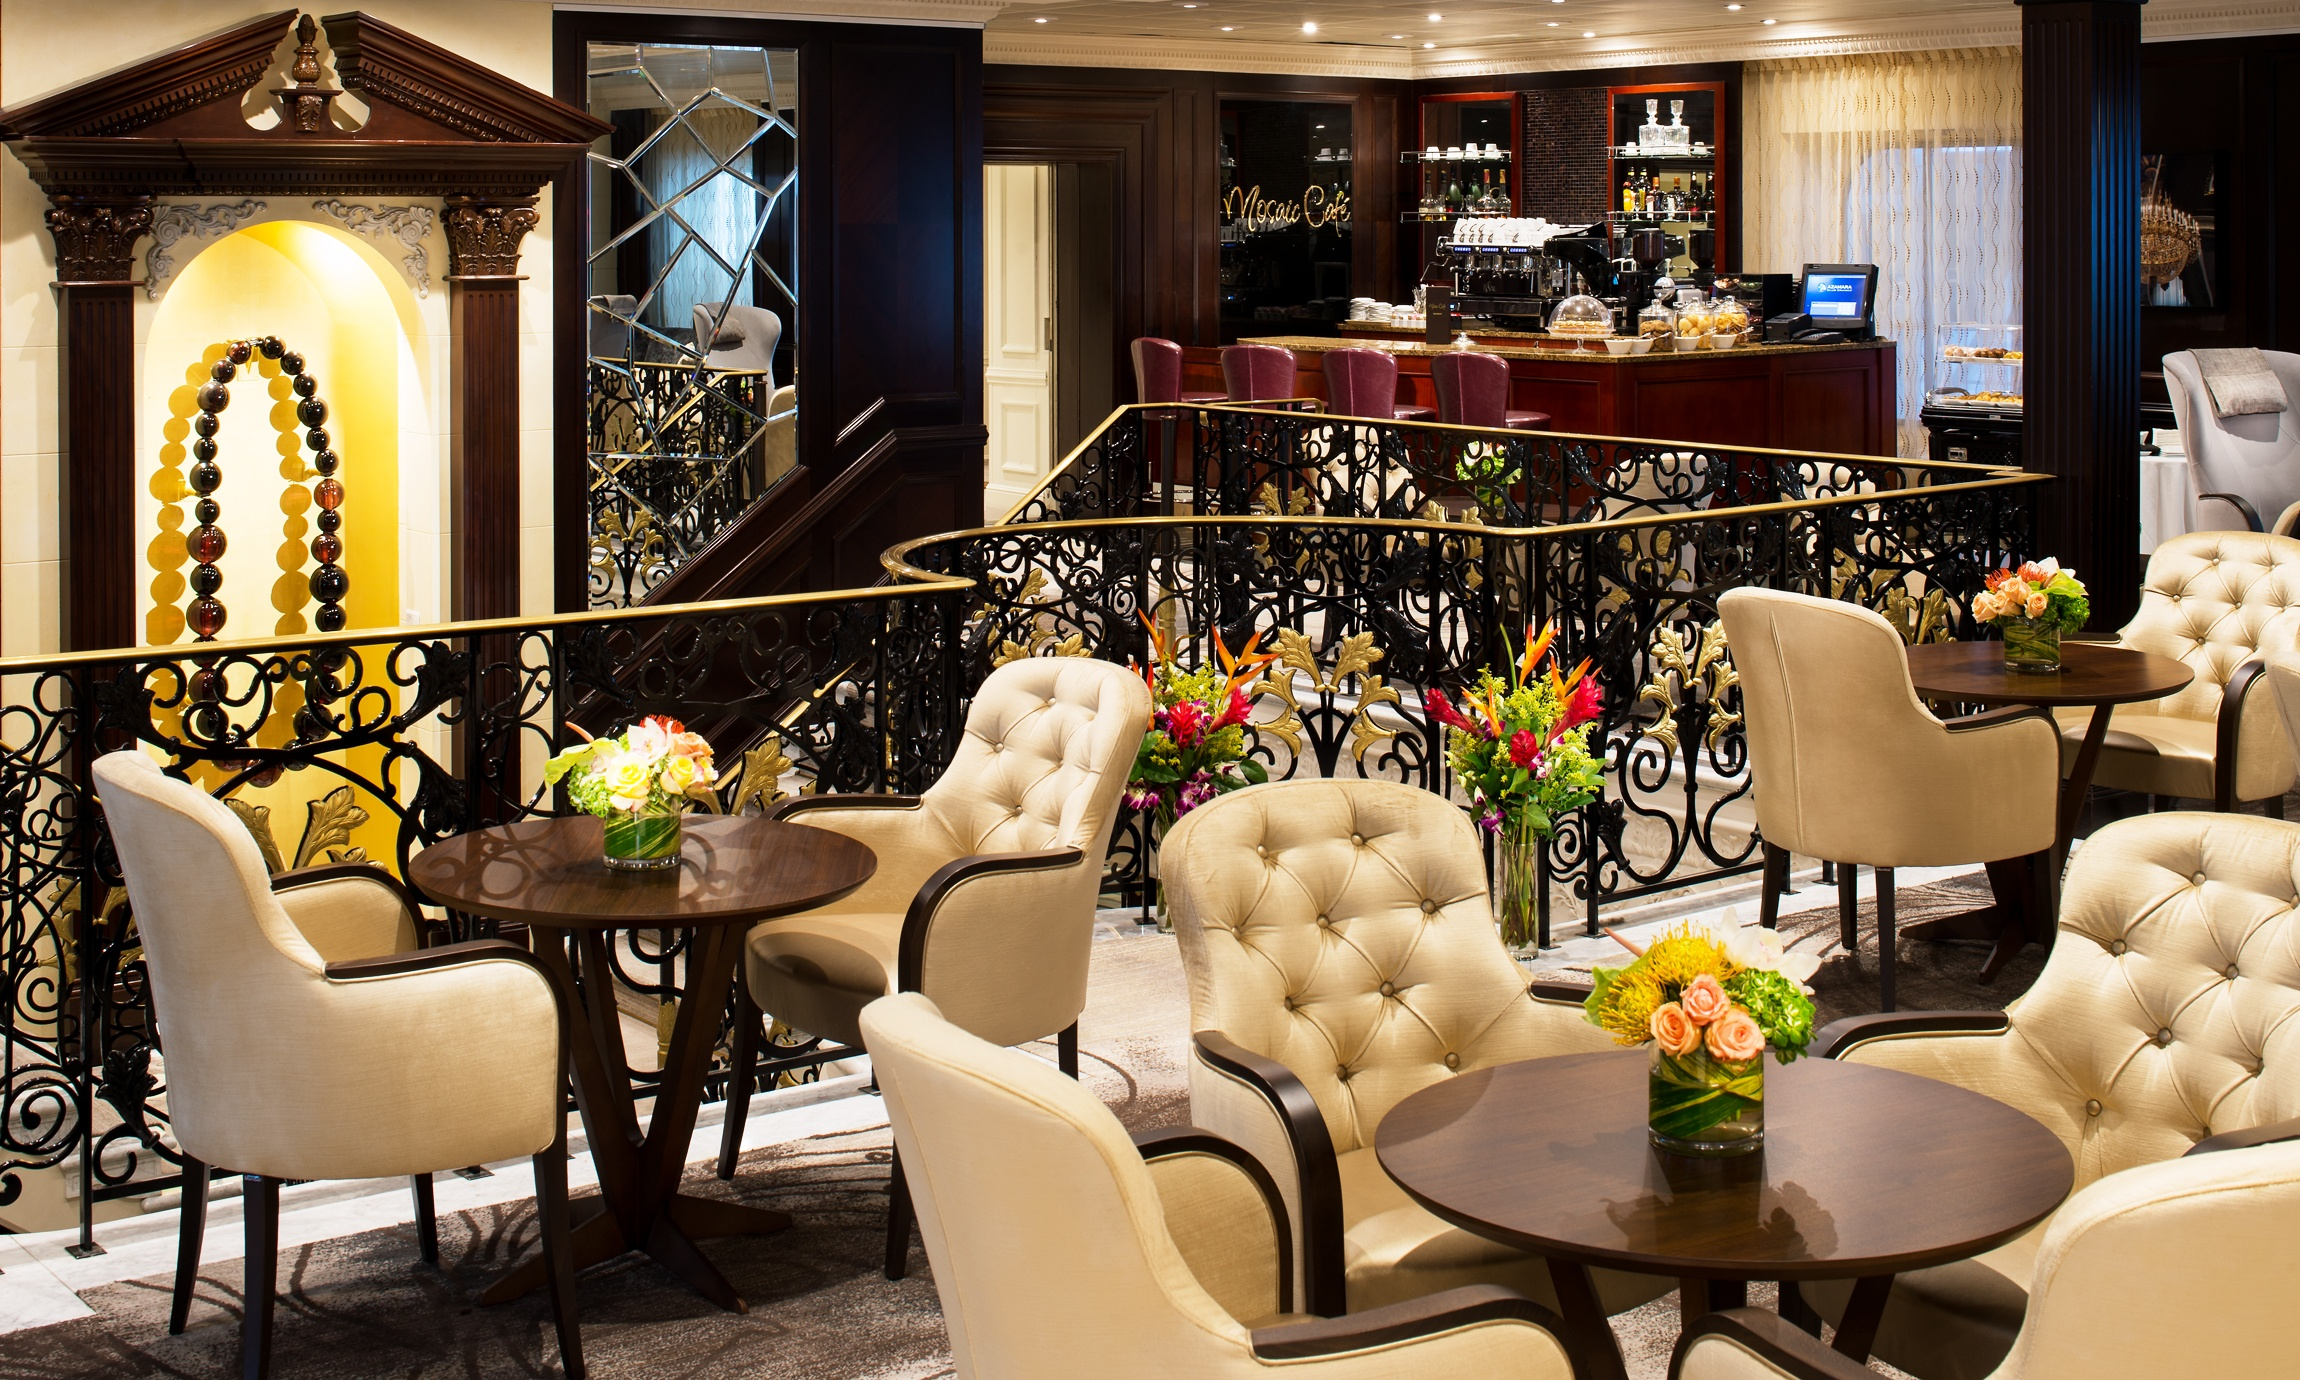 Image result for mosaic cafe azamara quest